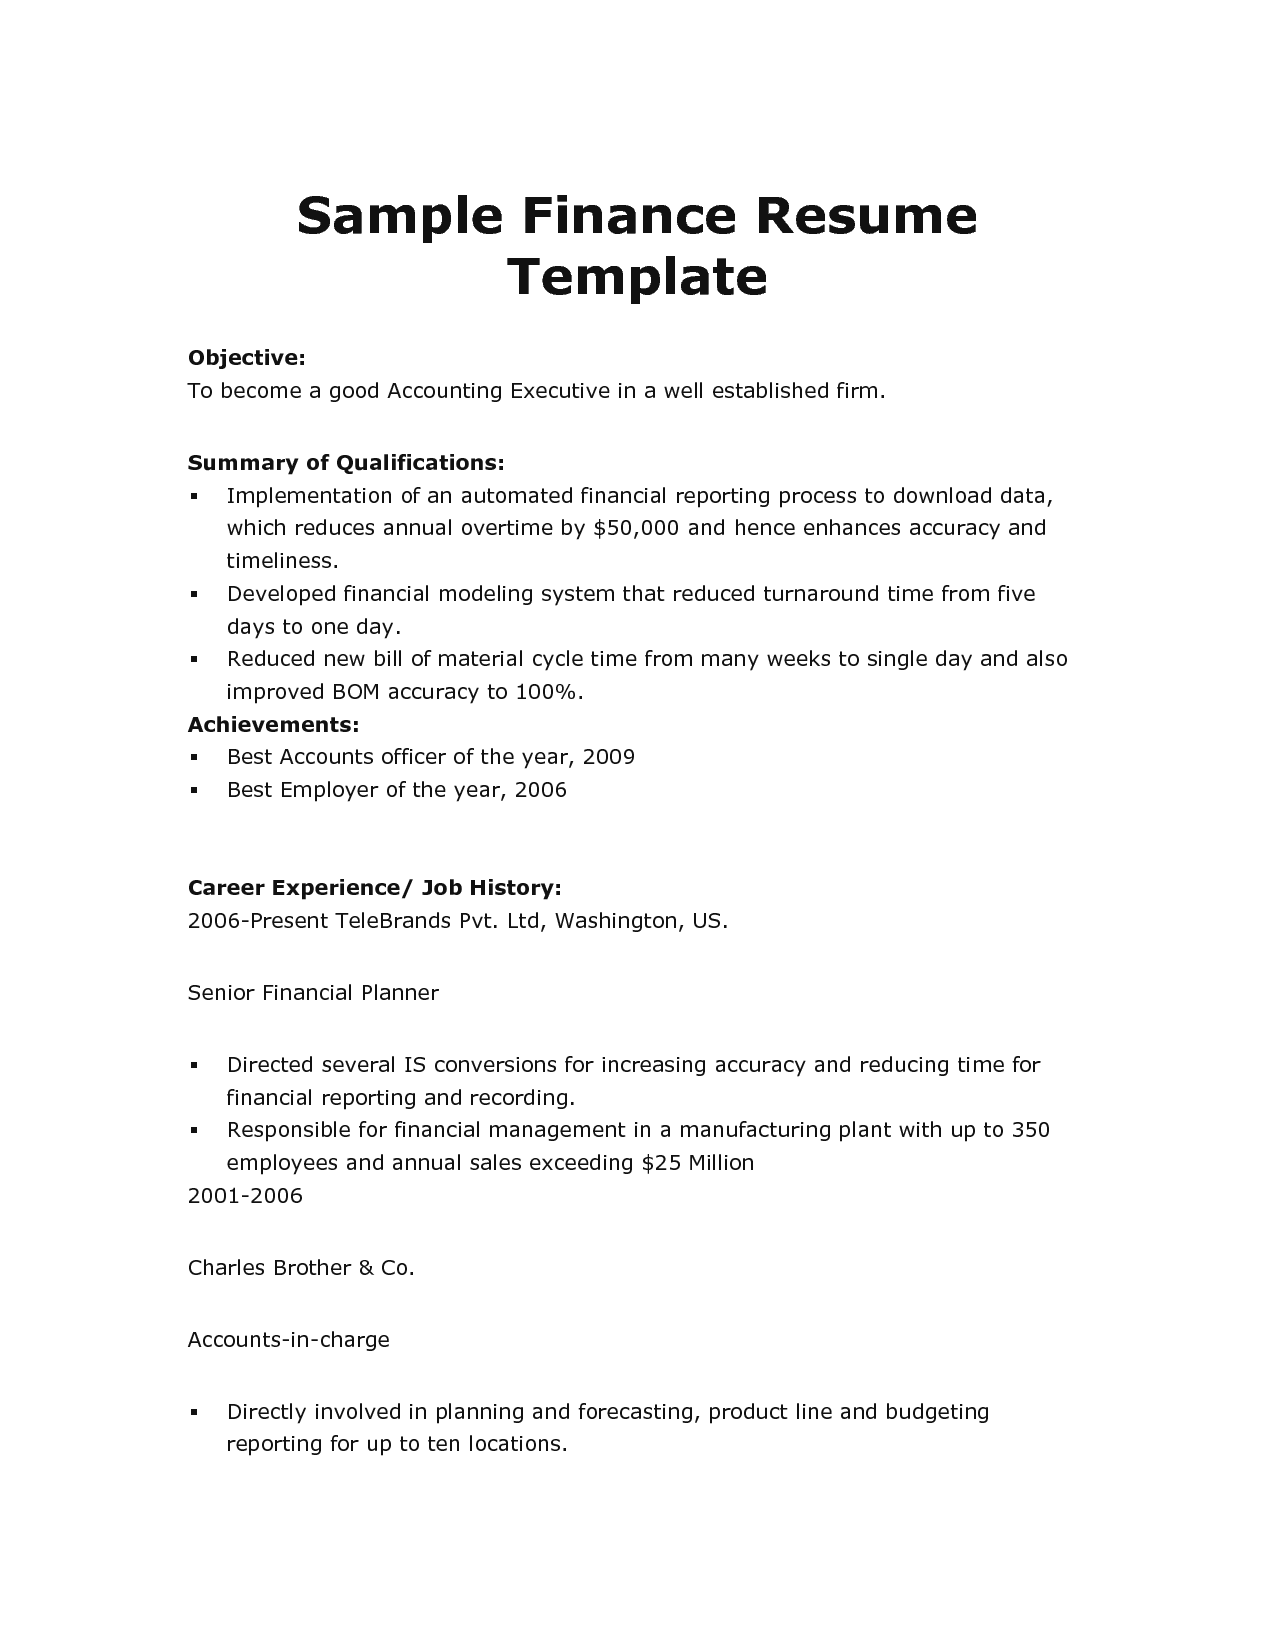 Professional Examples Of Resumes Download High Quality Professional Resume Template Samples